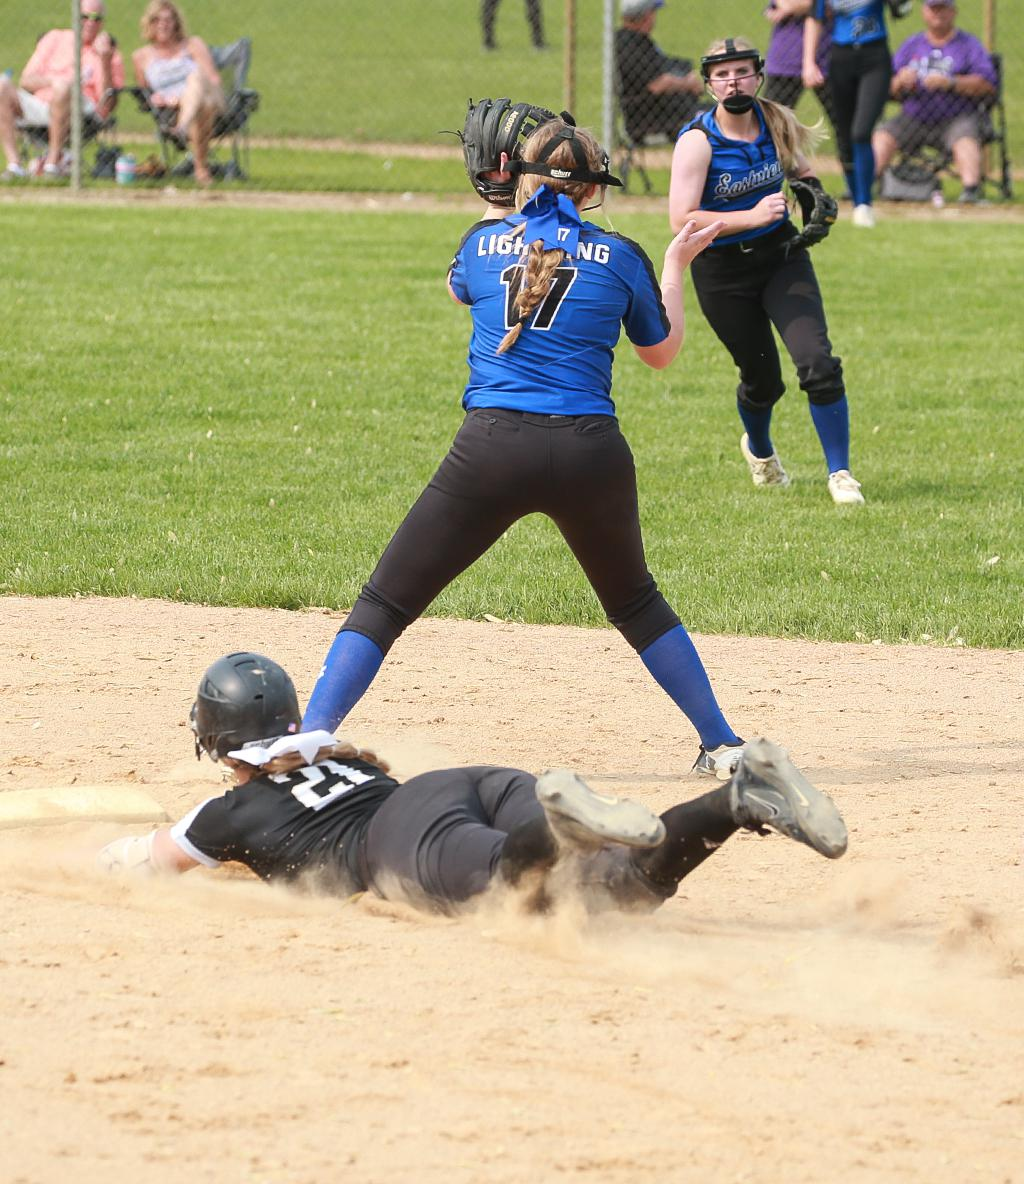 Sidney Zavoral (21) slides into second base on an RBI double in the bottom of the fifth inning, giving East Ridge a 5-4 lead. The Raptors beat Eastview 10-4 to clinch a spot in the Class 4A state tournament. Photo by Cheryl Myers, SportsEngine